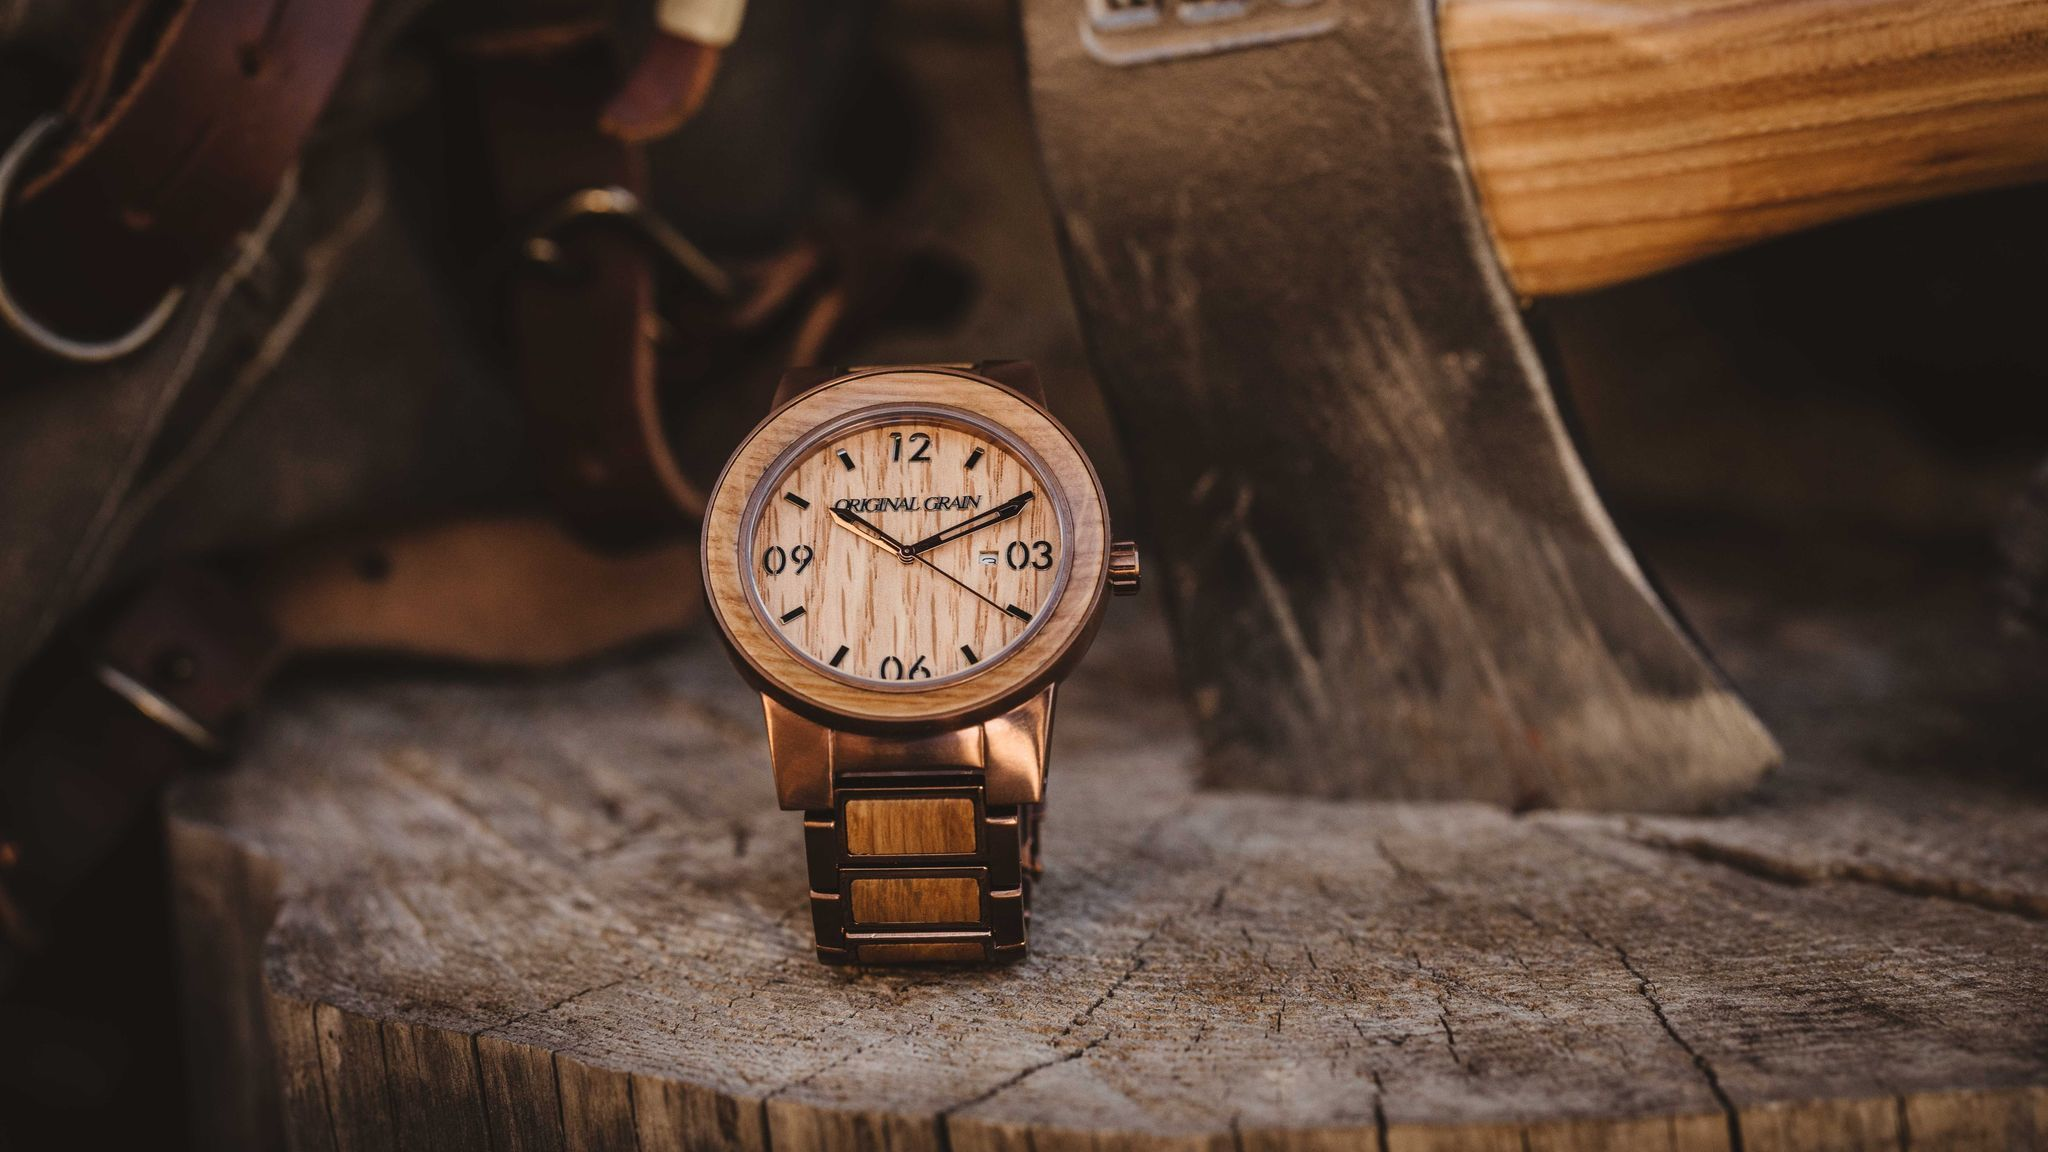 Watches from Original Grain, made from repurposed bourbon barrels.